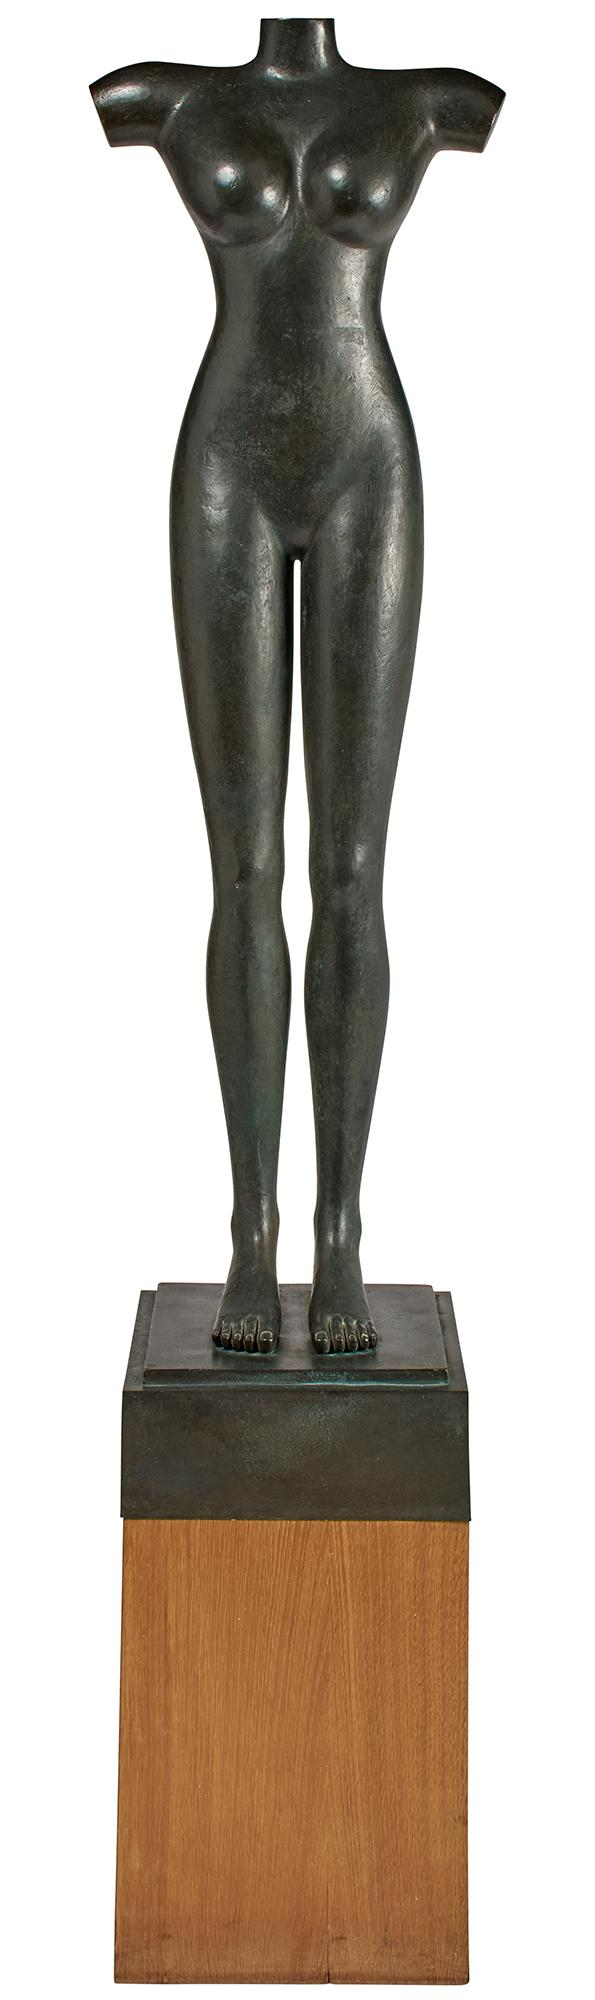 Louis Cane Patinated-Bronze Figure Venus SignedCane. Height of figure 51 1/2 inches, height overall 6 feet 1/2 inch.